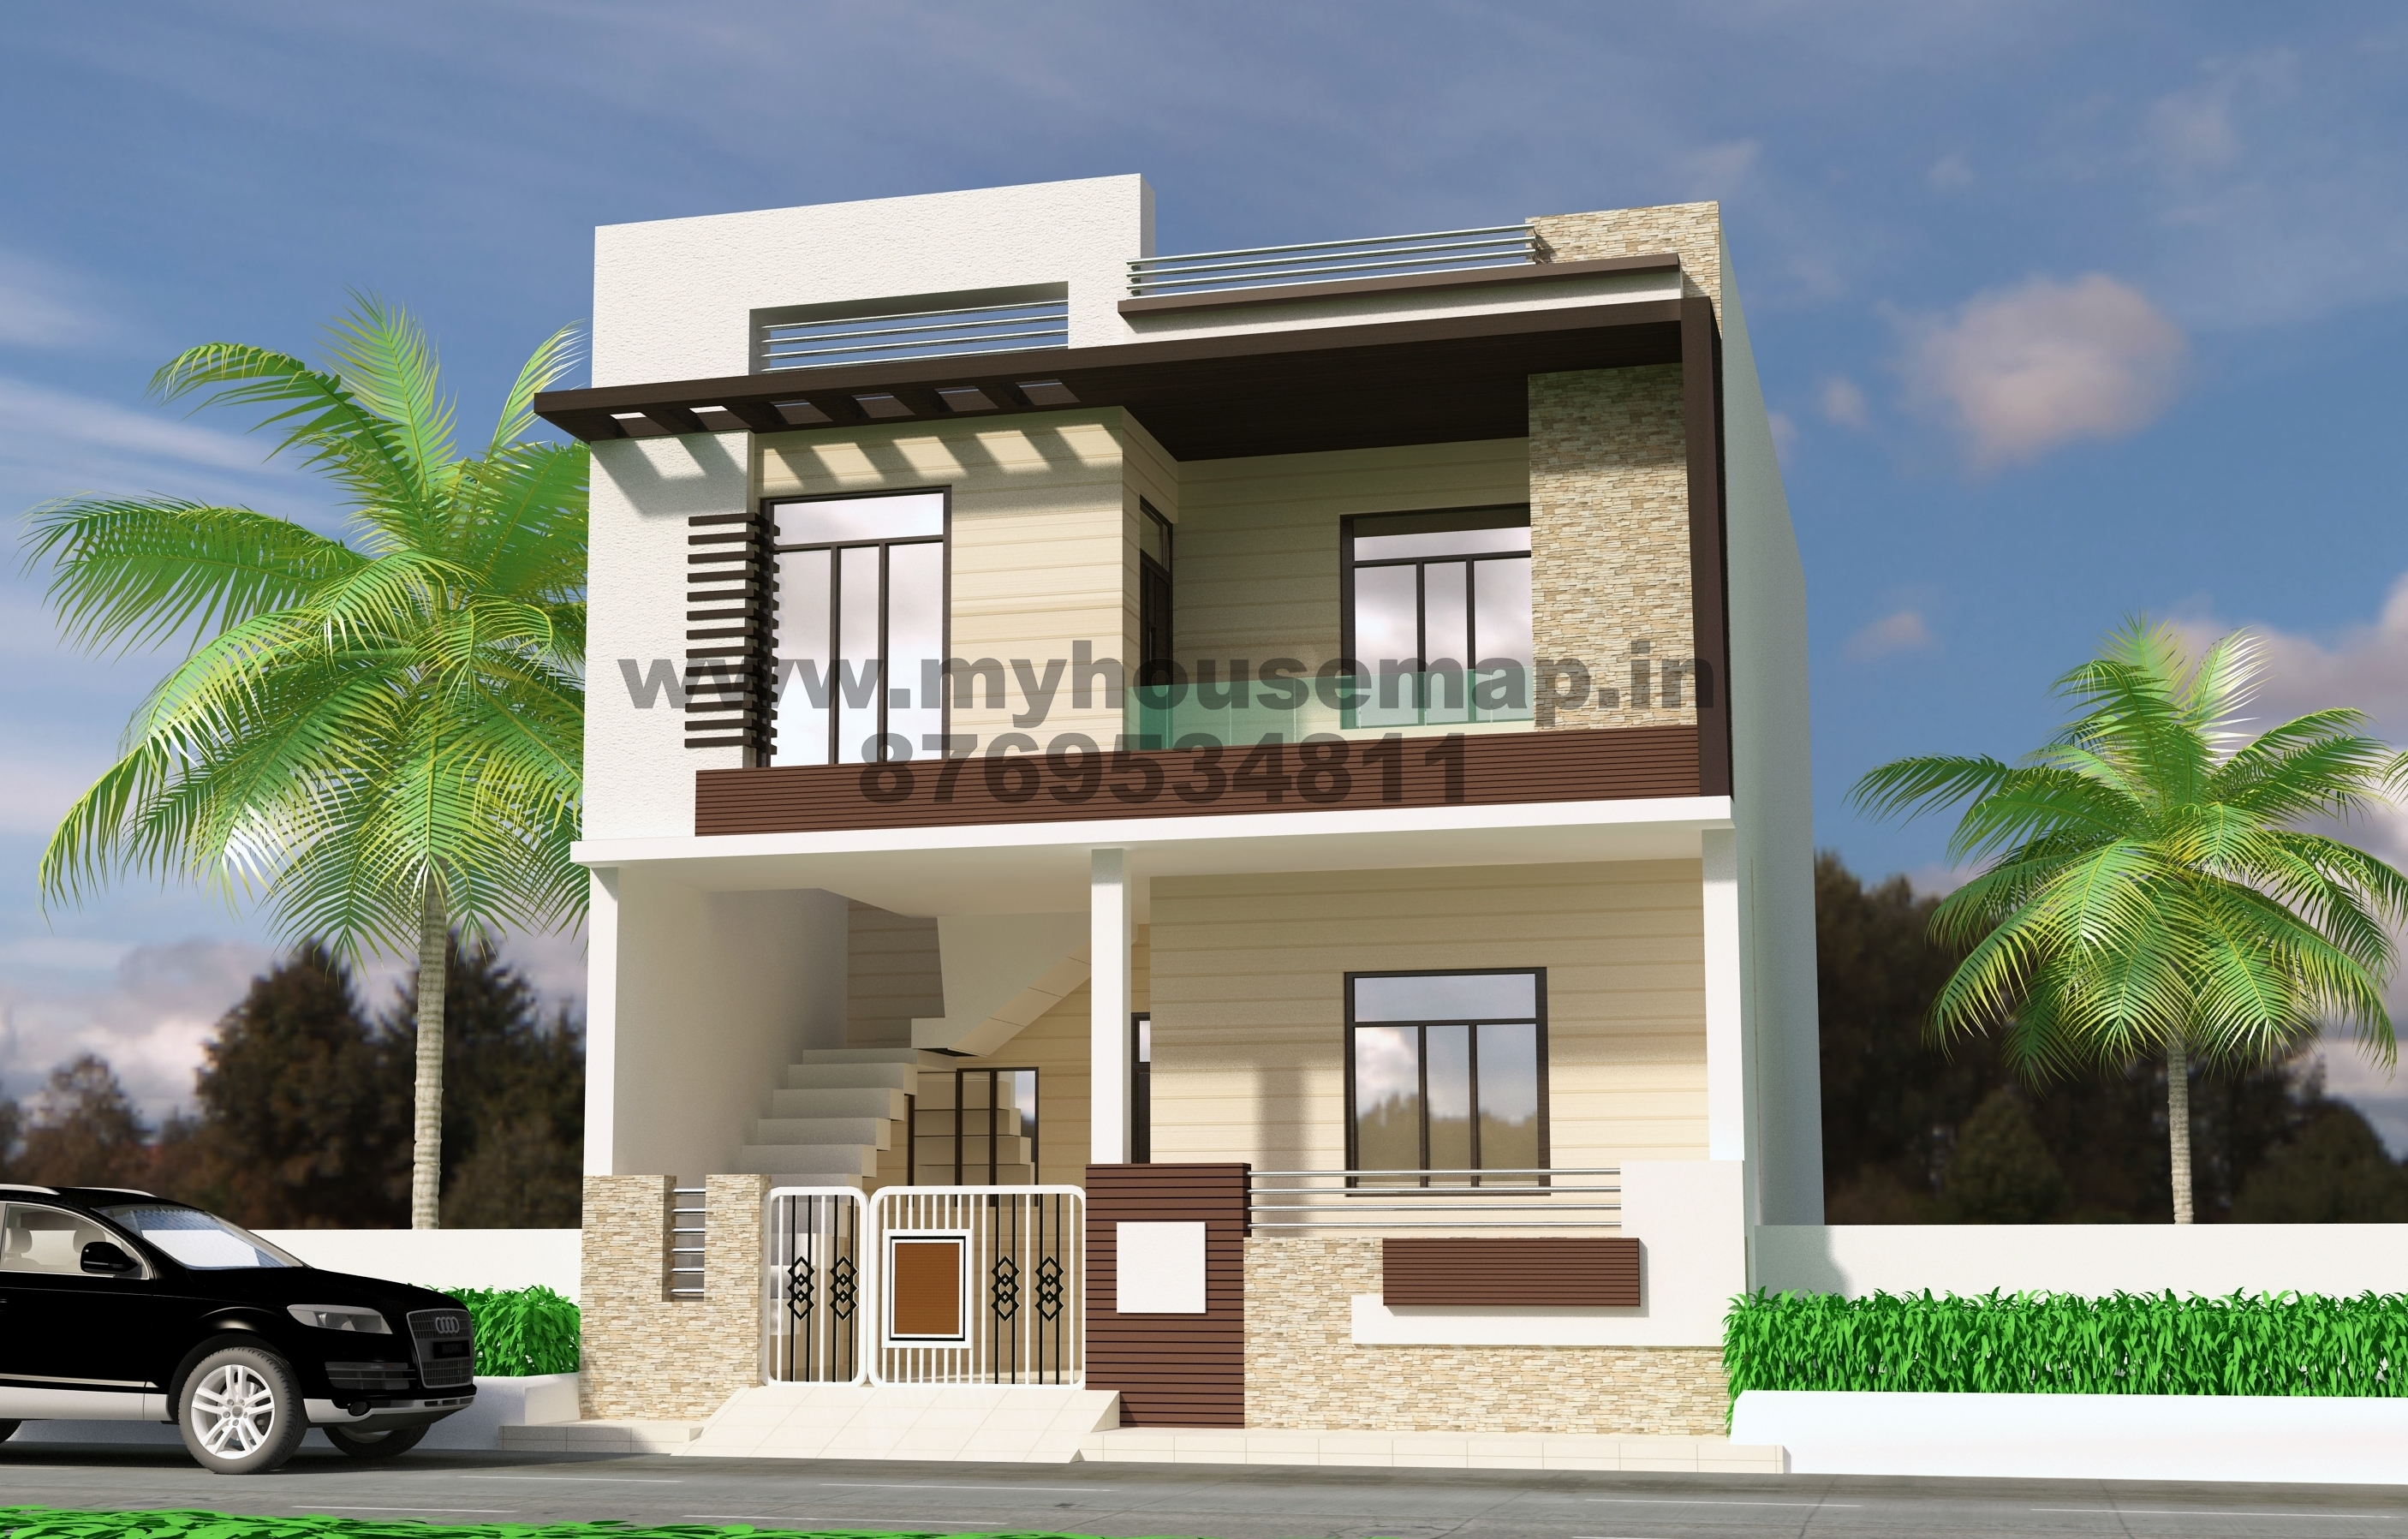 Fabulous Front Elevation Design Modern Duplex | Front Elevation Design House within Indian Home Elevation Design Photo Gallery